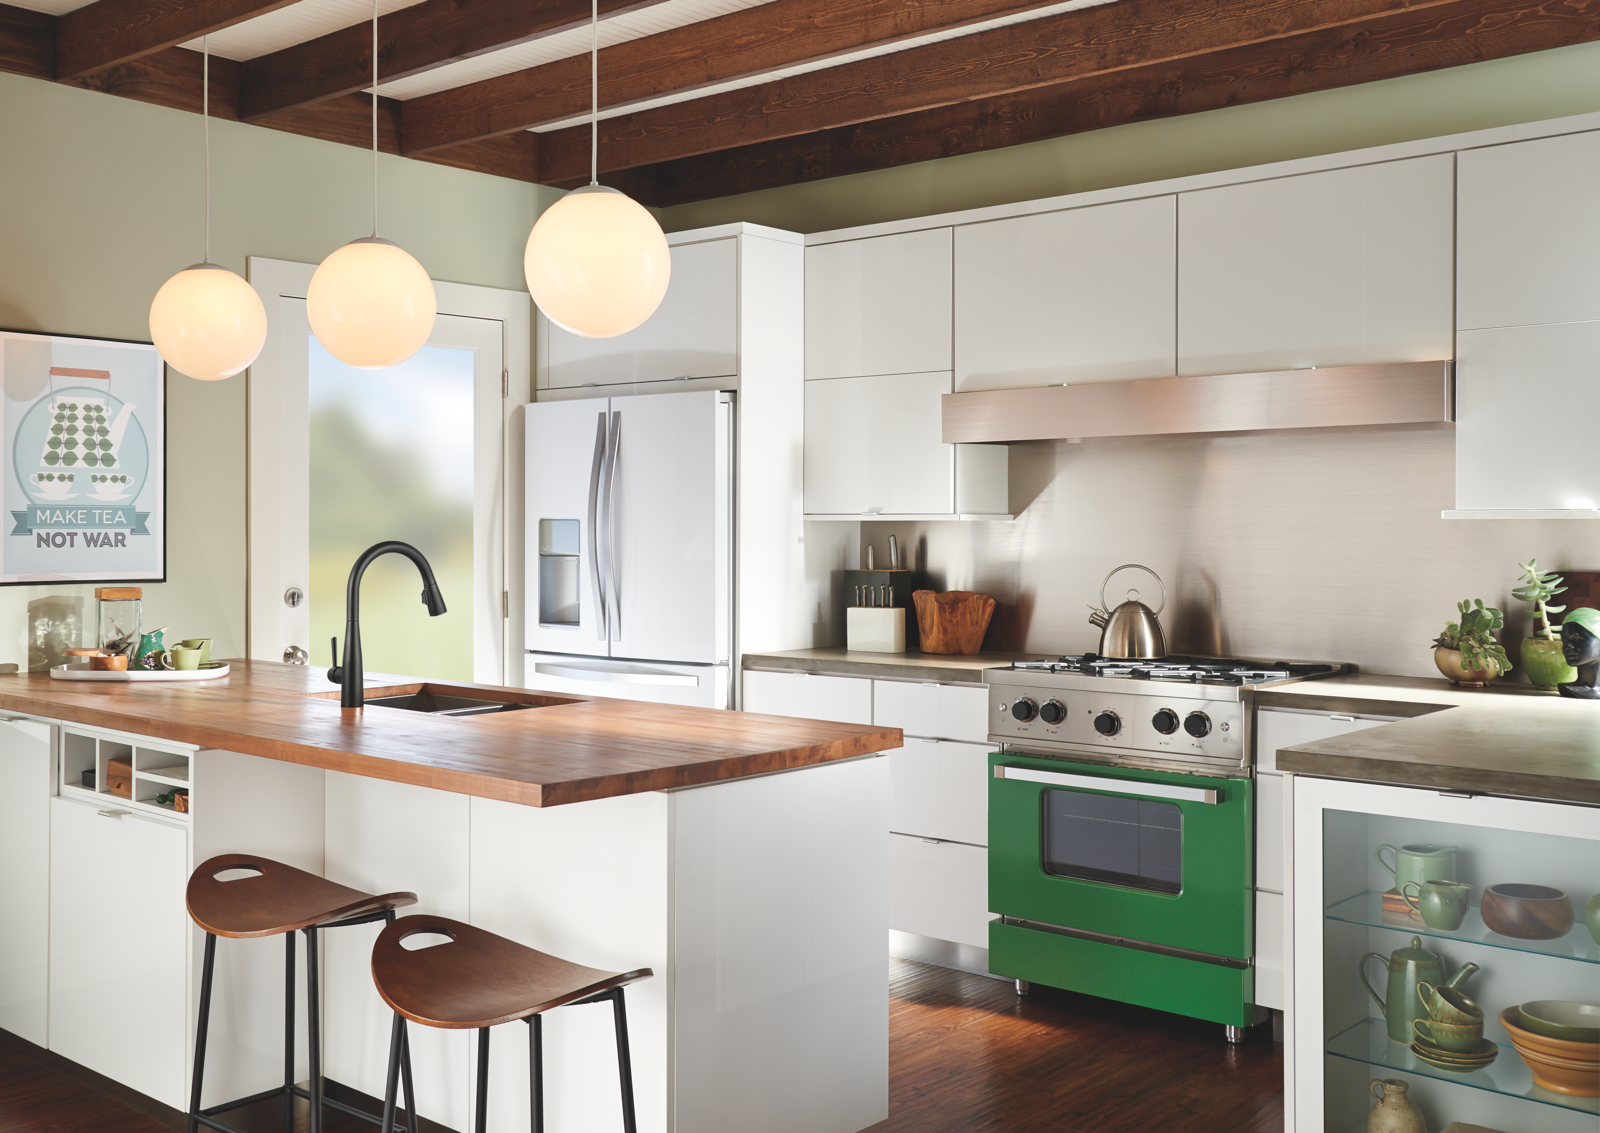 Tagged: Kitchen, Range, Range Hood, White Cabinet, Medium Hardwood Floor, Wood Counter, and Refrigerator.  Best Photos from 8 Ways to Refresh and Personalize Your Kitchen